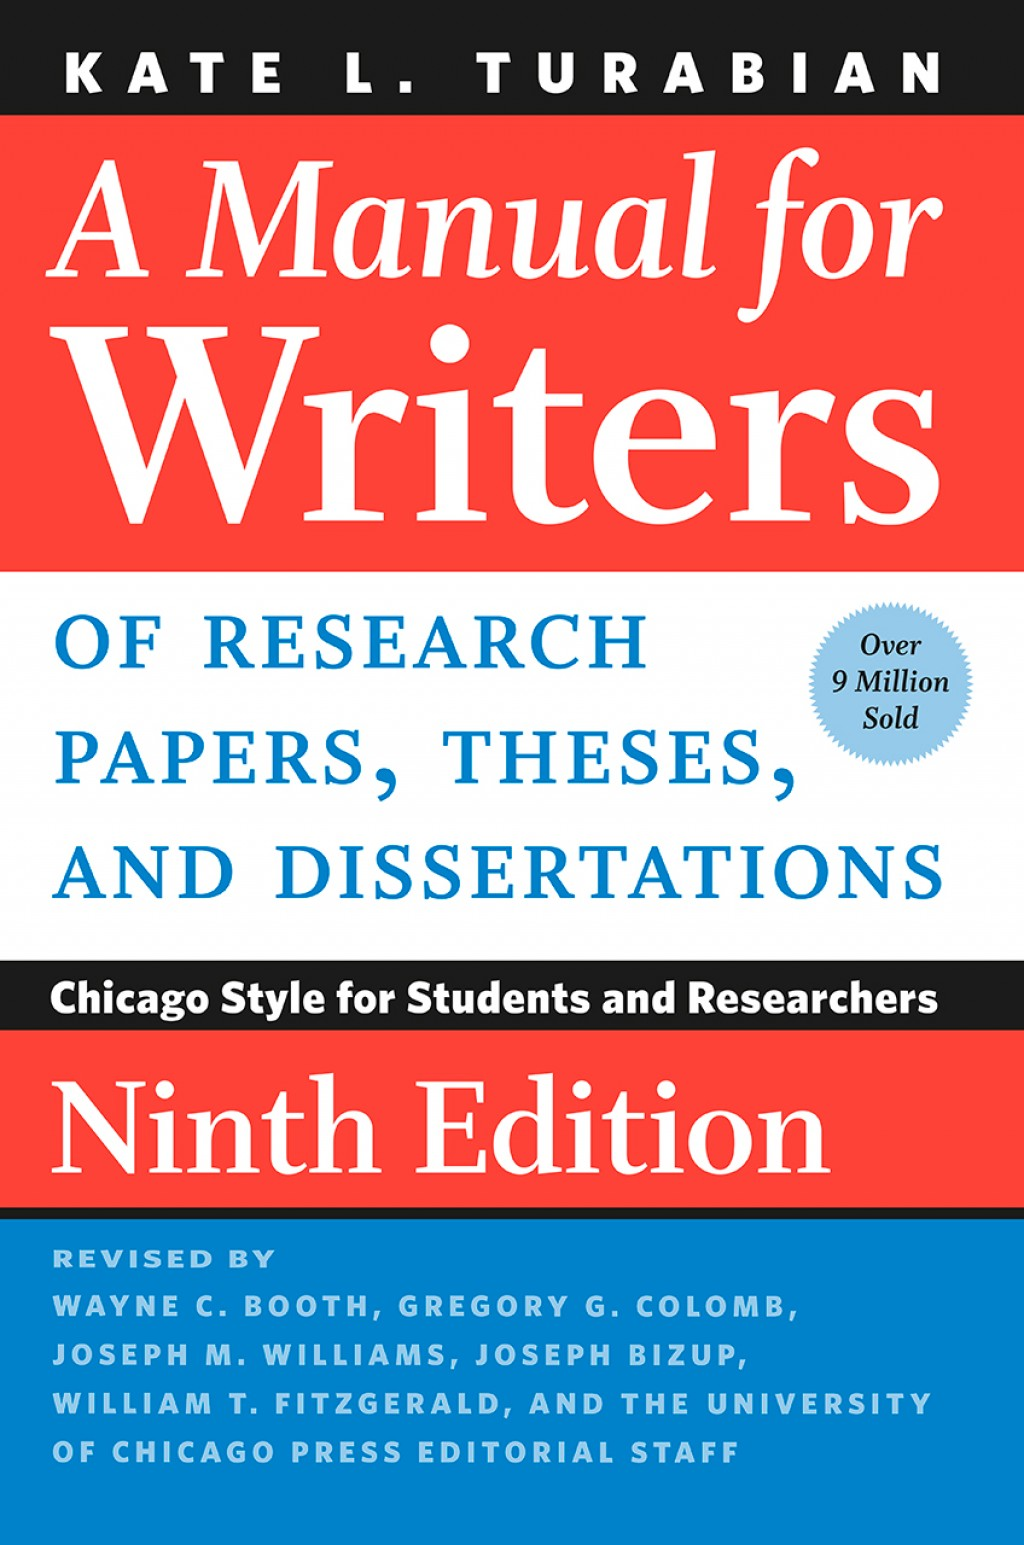 001 Manual For Writers Of Research Papers Theses And Dissertations Paper Magnificent A 8th Pdf Amazon Large